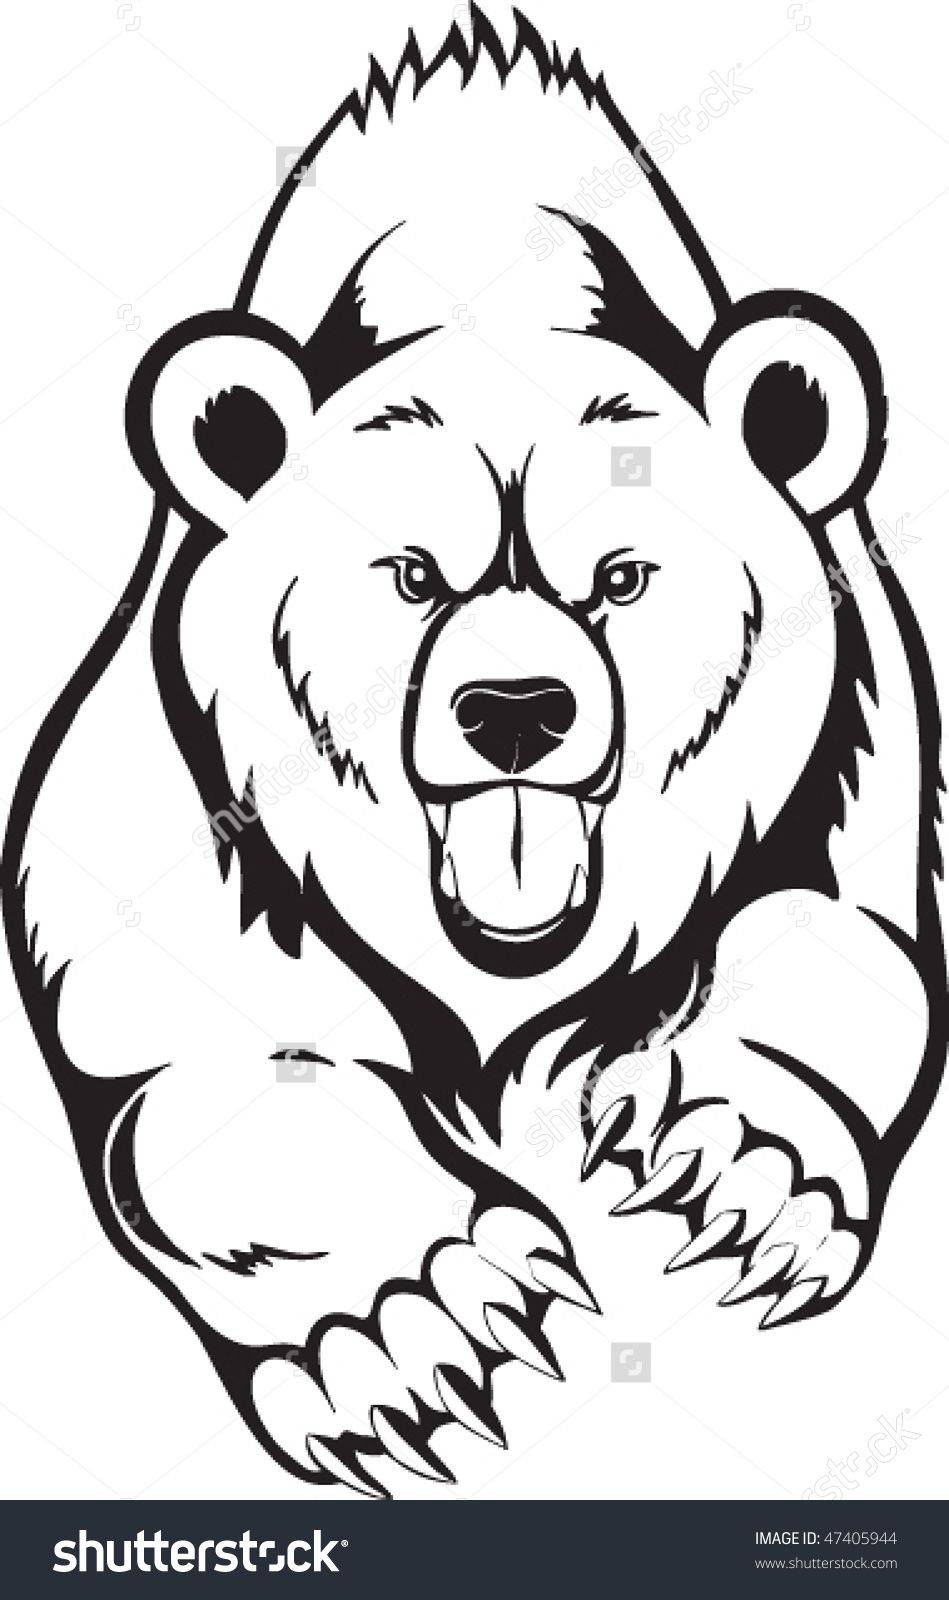 svg black and white Grizzly clipart bear tattoo. Related image alaska trip